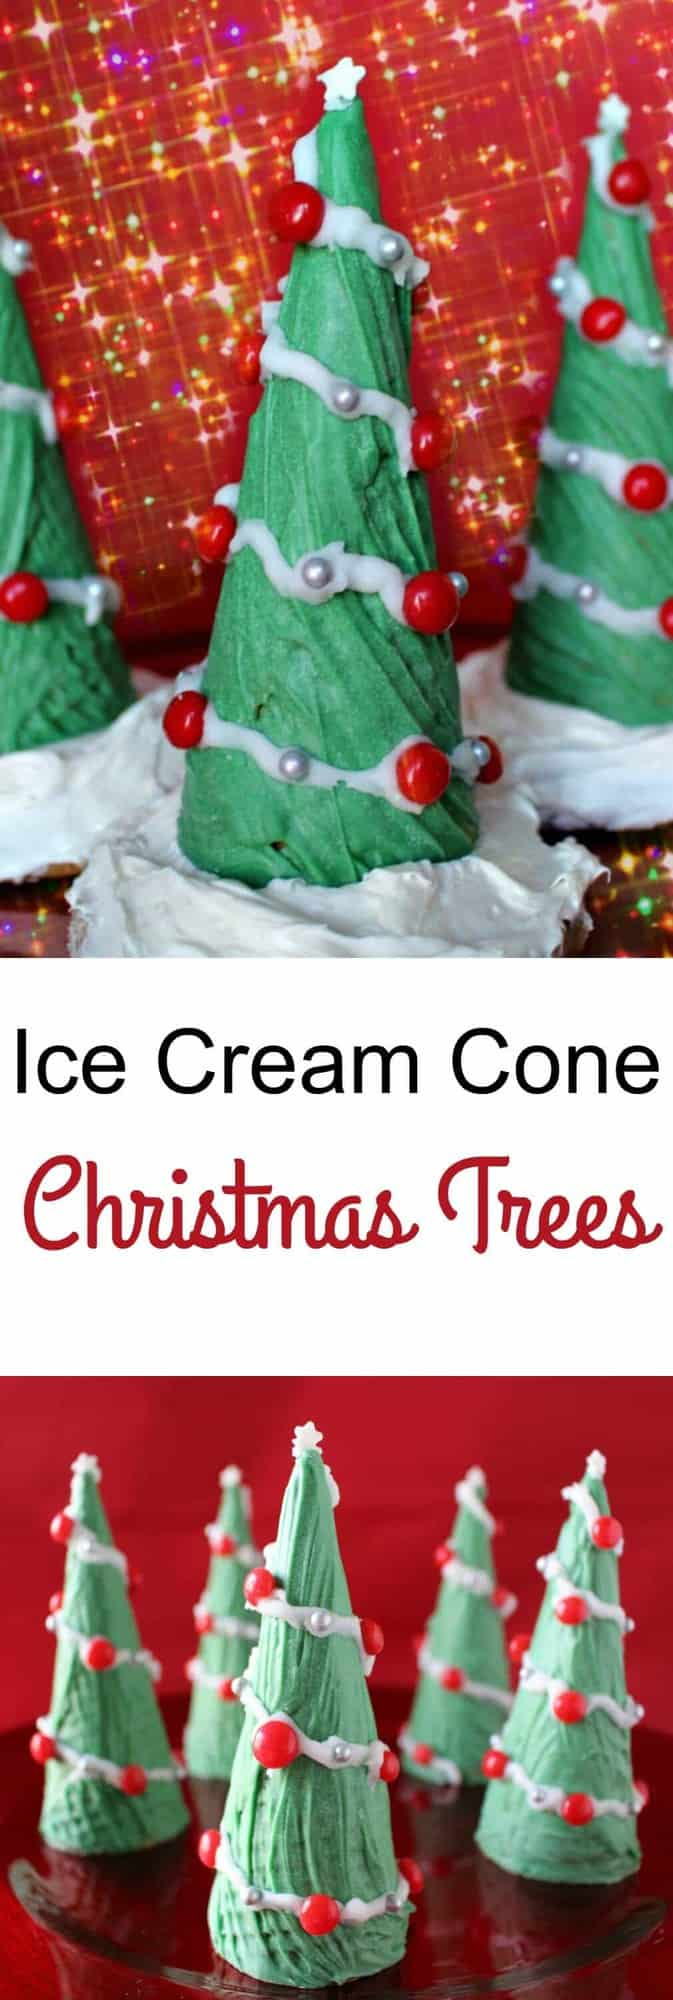 Ice Cream Cone Christmas Trees - a wonderful holiday treat!